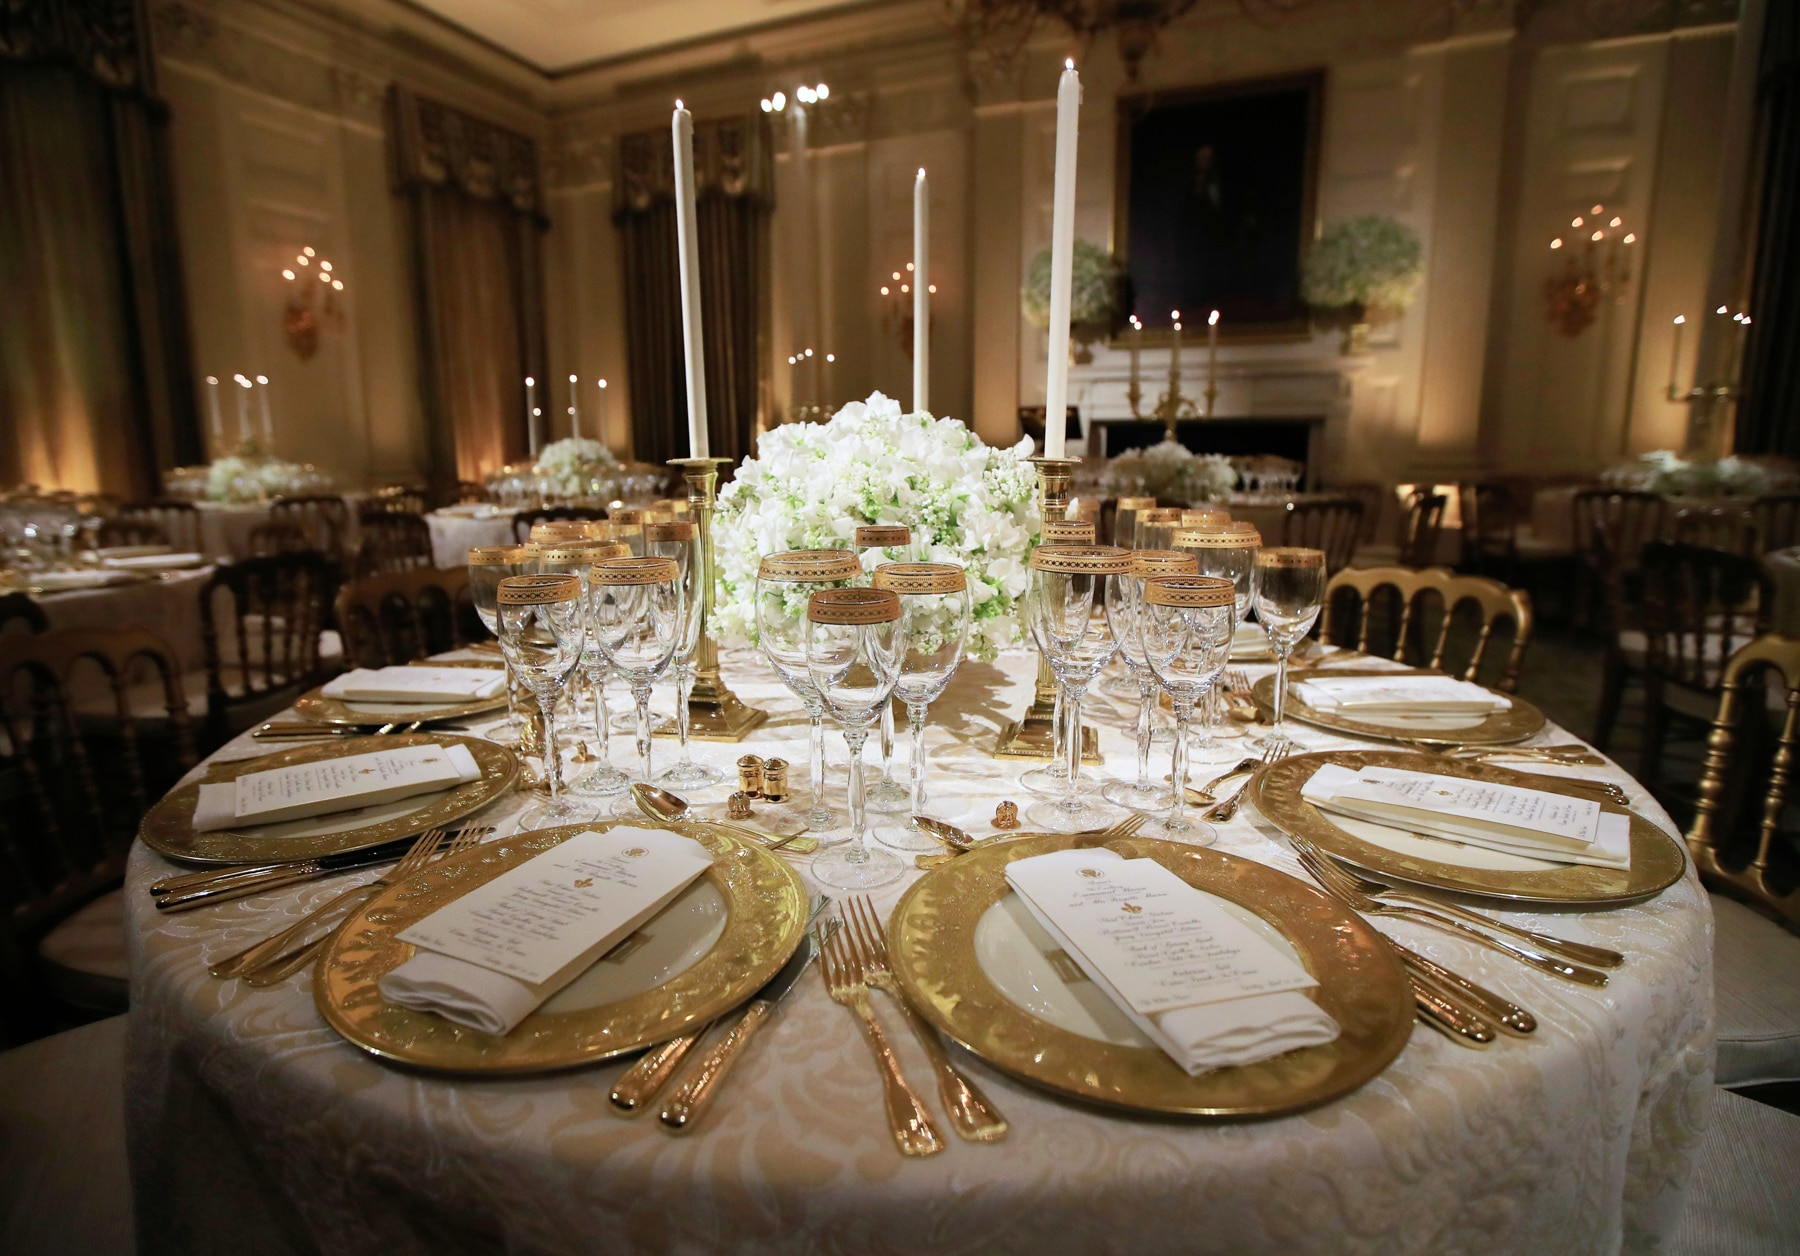 Table settings for a state dinner at the White House (© Manuel Balce Ceneta/AP Images)